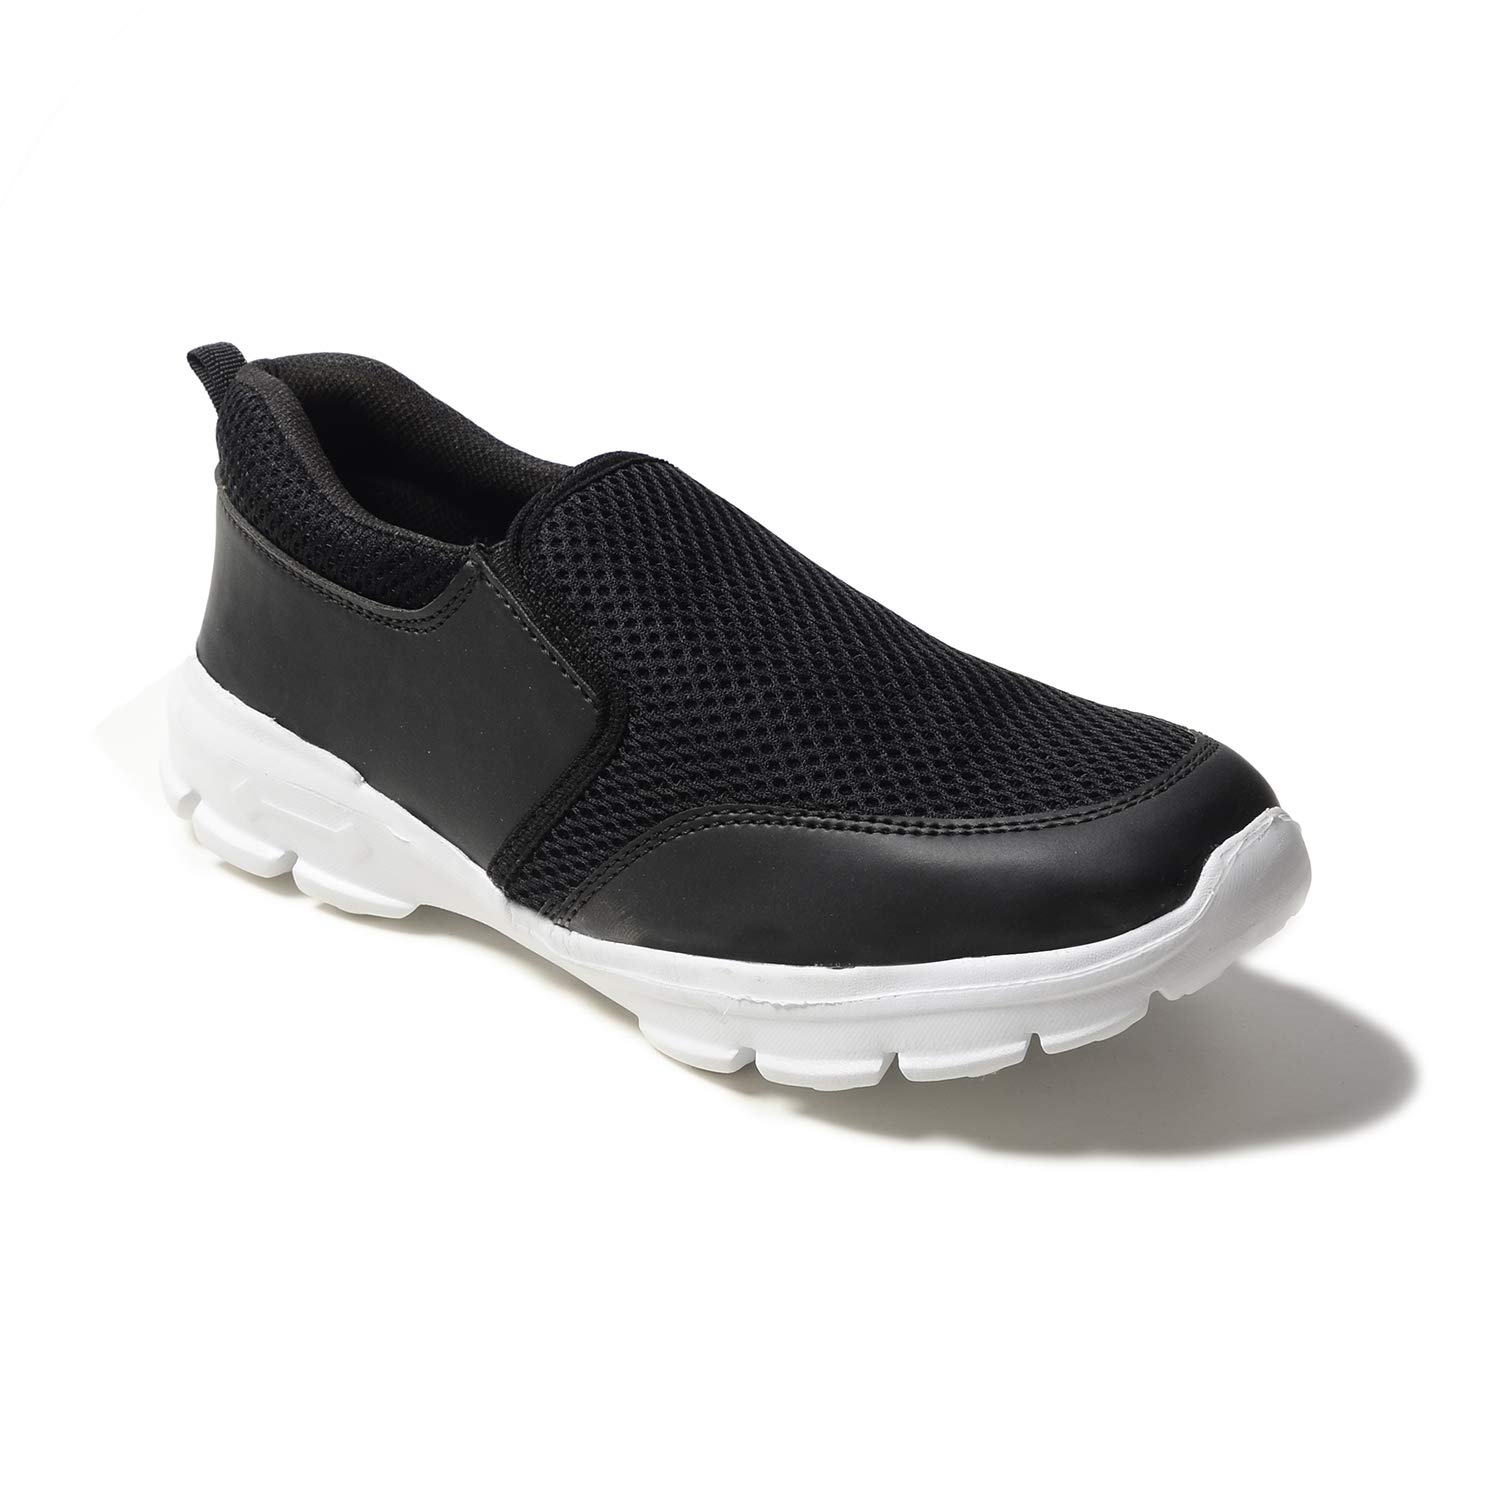 Loafer Shoes Without Laces for